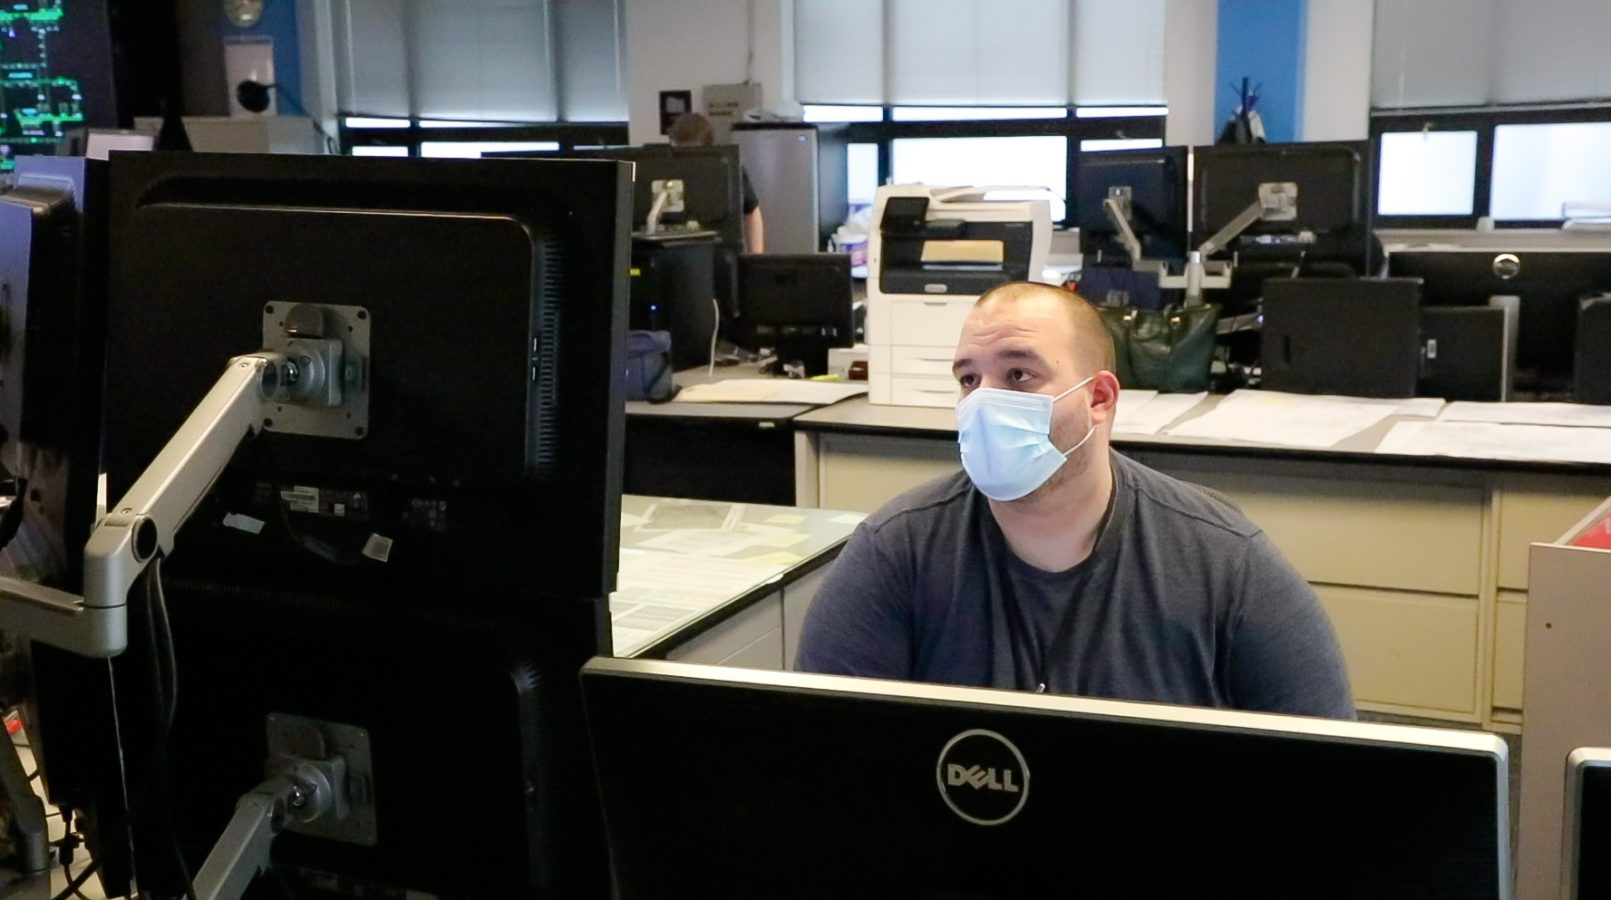 PECO's Operations Control Center (OCC) employees work around the clock to ensure our customers have the safe and reliable service